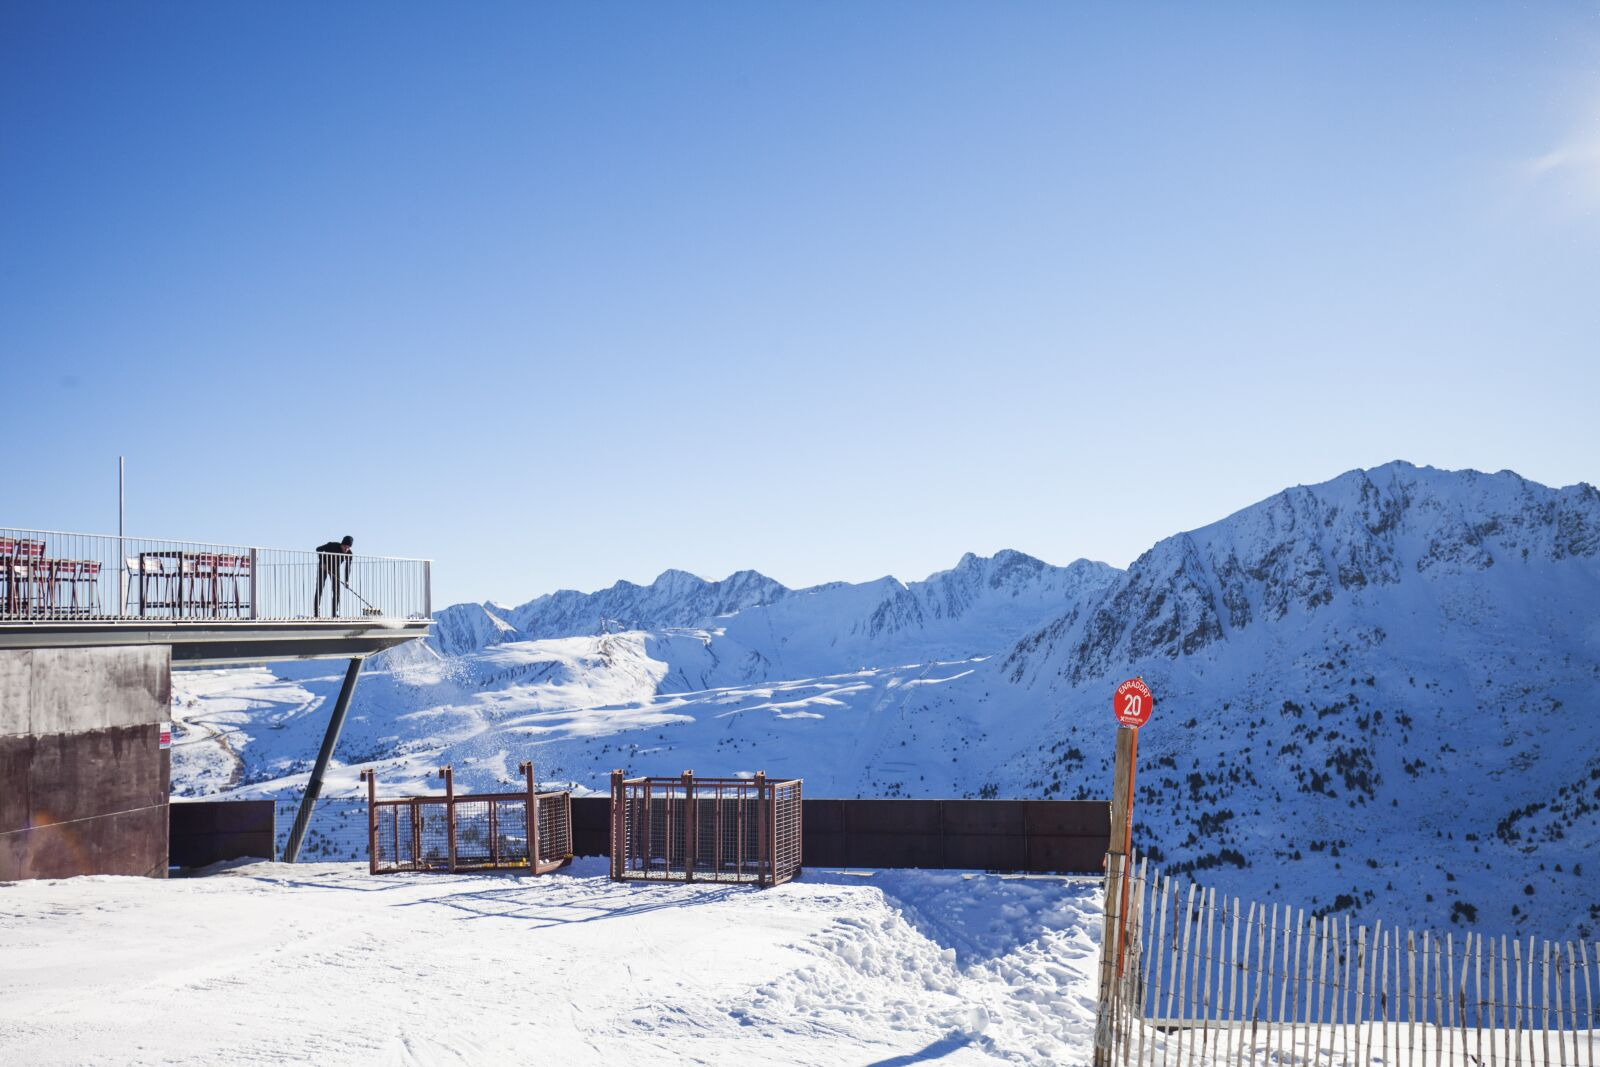 snow, mountain, ski, Canon EOS 5D MARK II, Canon EF16-35mm f/4L IS USM